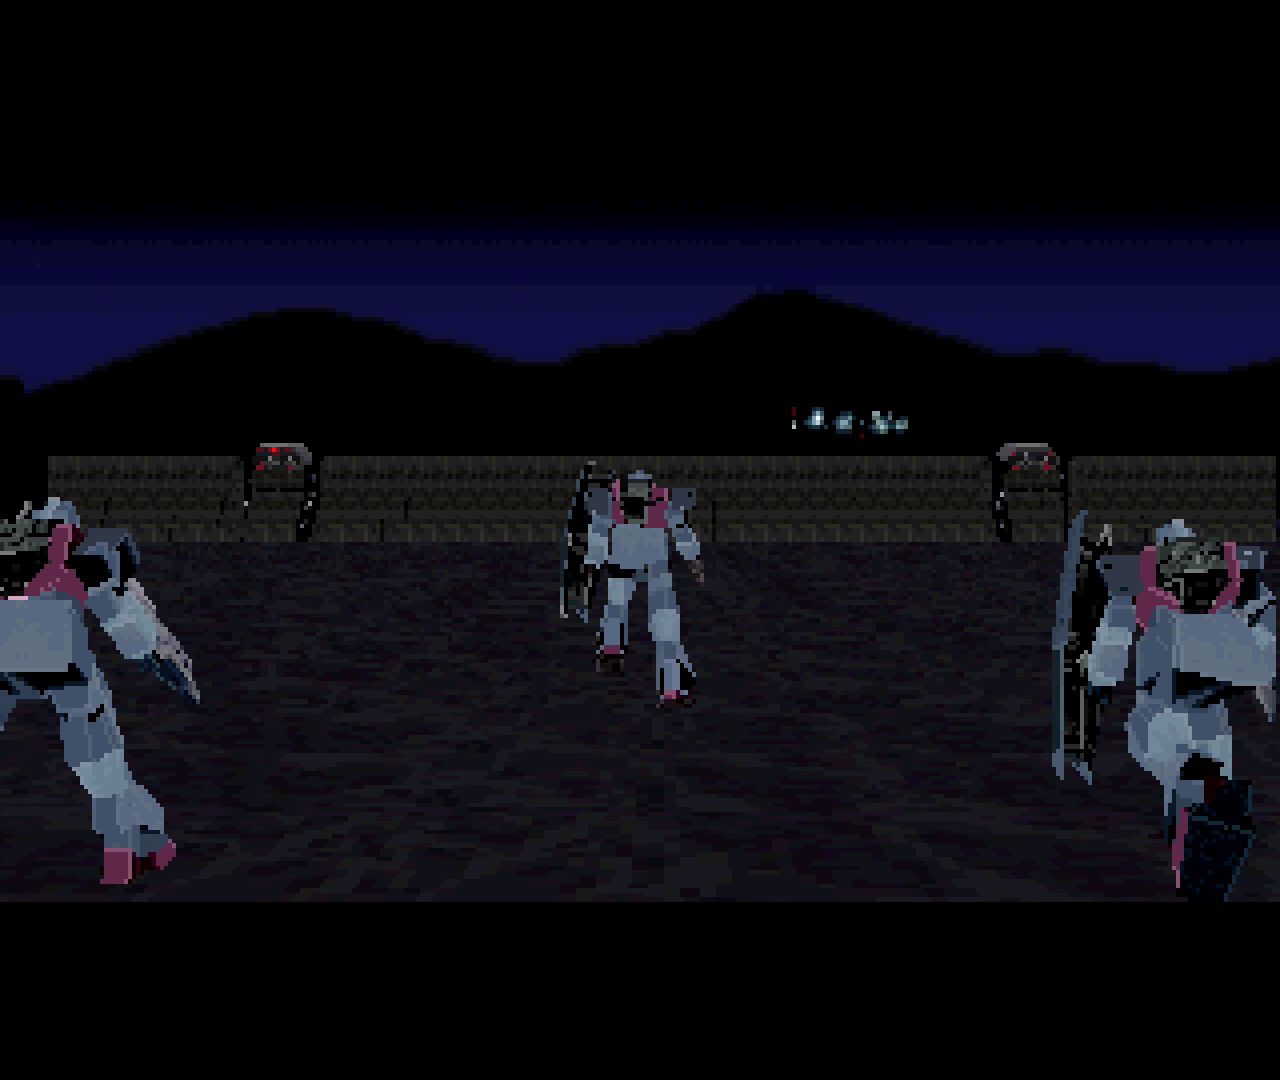 Figure 12 - The 3D graphics in Mobile Suit Gundam Side Story are surprisingly good for the Sega Saturn